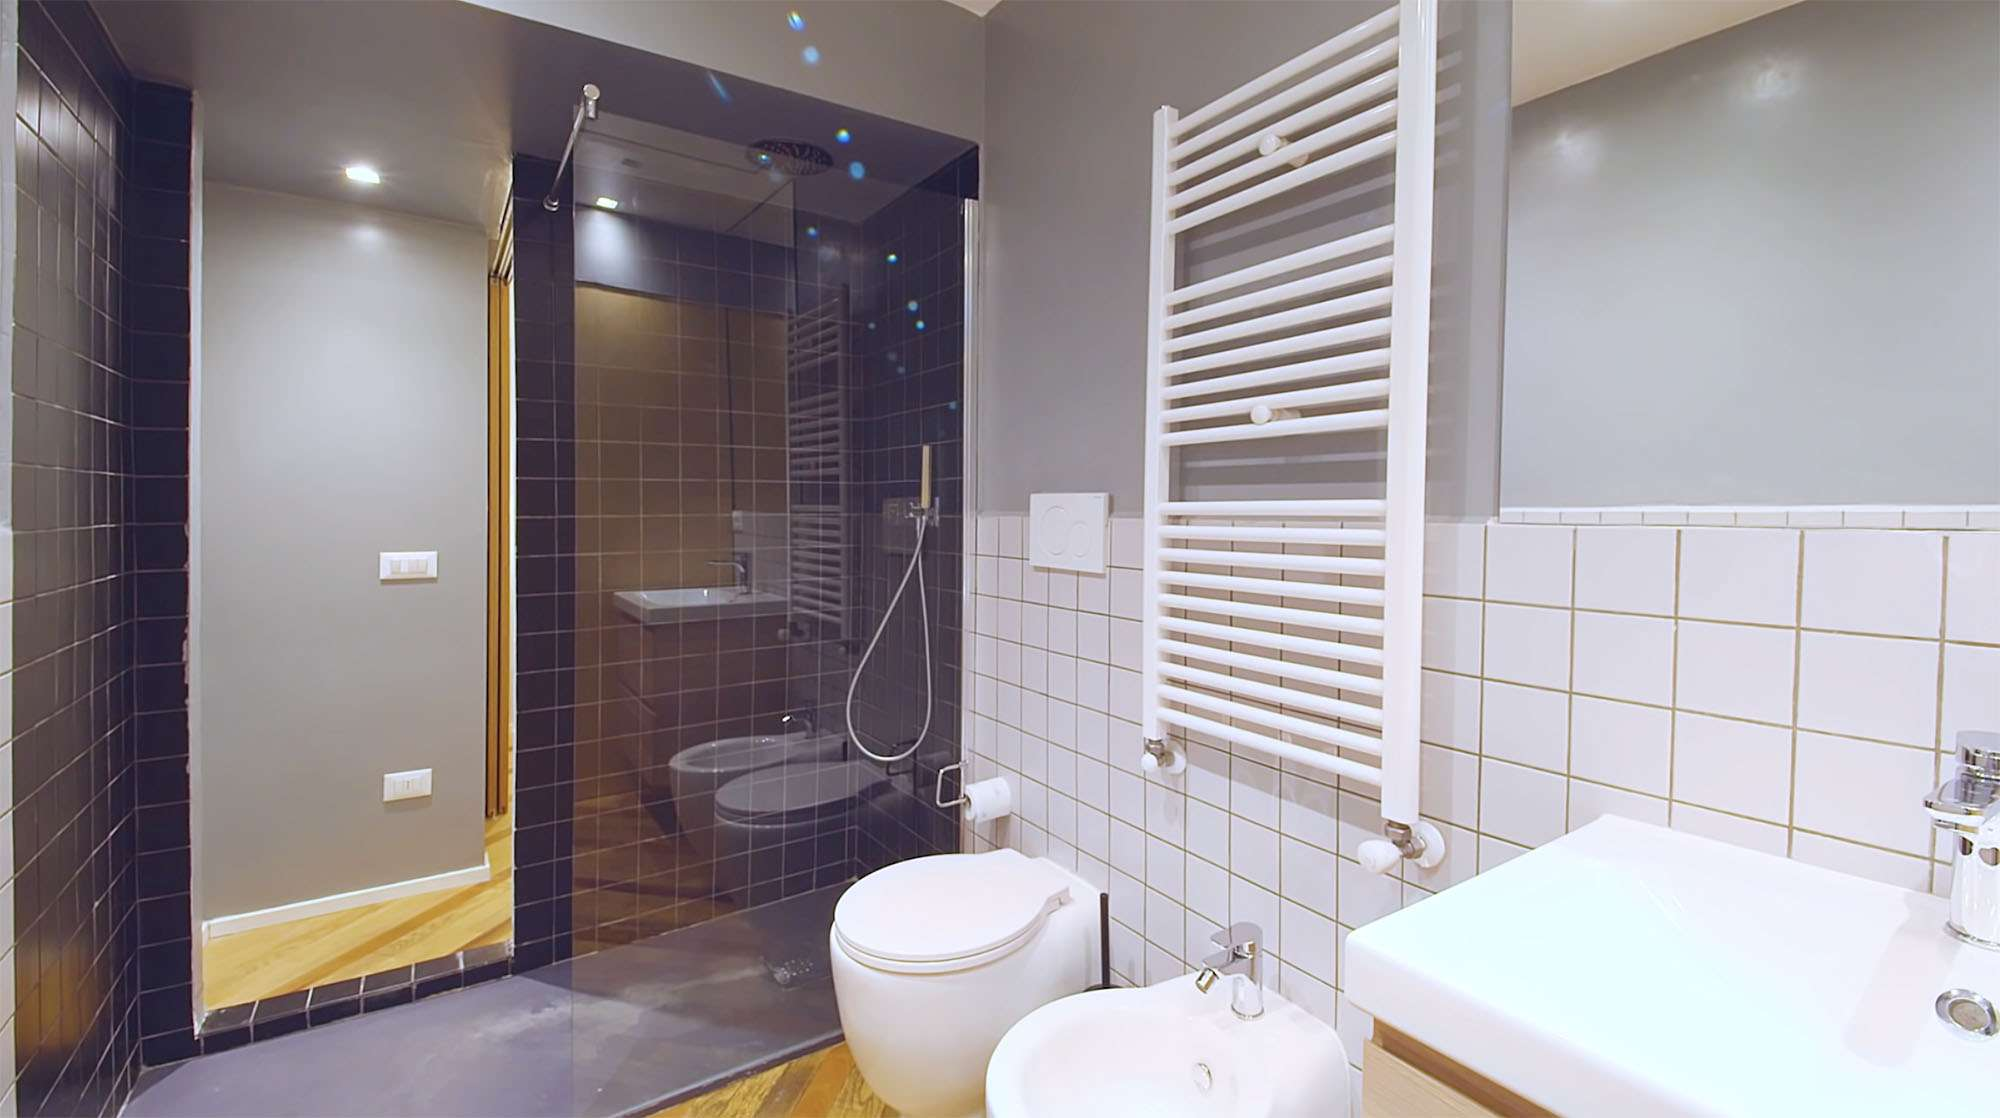 House In Constant Transition small apartment renovation ATOMAA bathroom